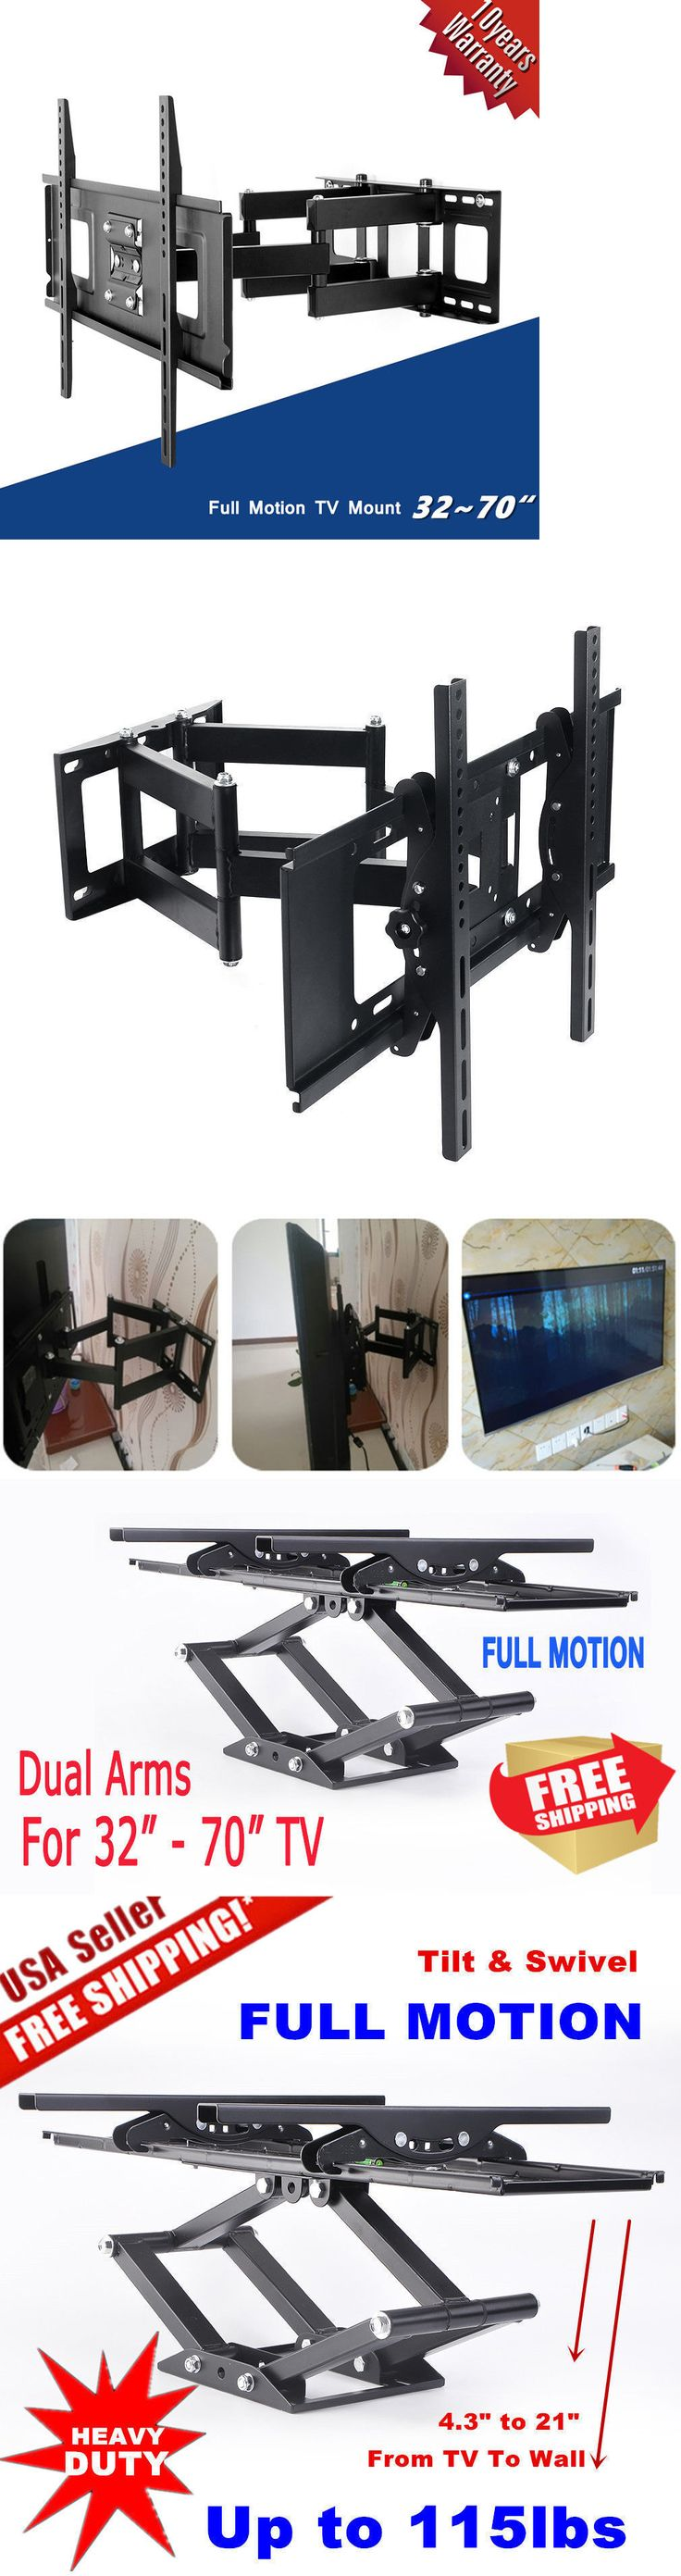 TV Mounts and Brackets: Articulating Swivel Led Lcd Tv Wall Mount Bracket 32 40 42 46 47 50 55 60 65 70 -> BUY IT NOW ONLY: $30.85 on eBay!